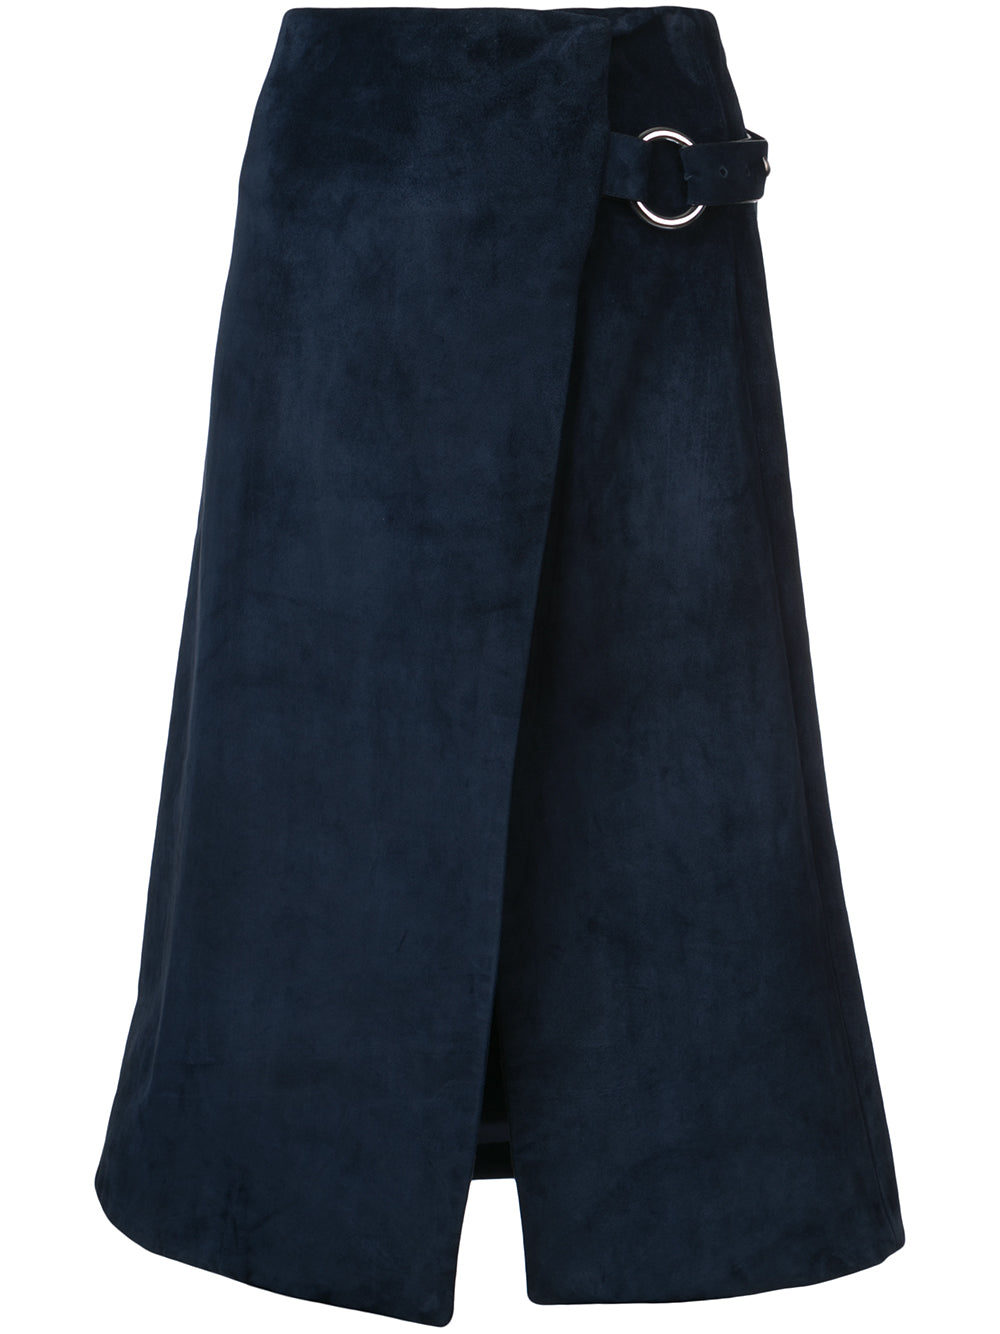 CALF SUEDE WRAP SKIRT WITH METAL CLOSURE